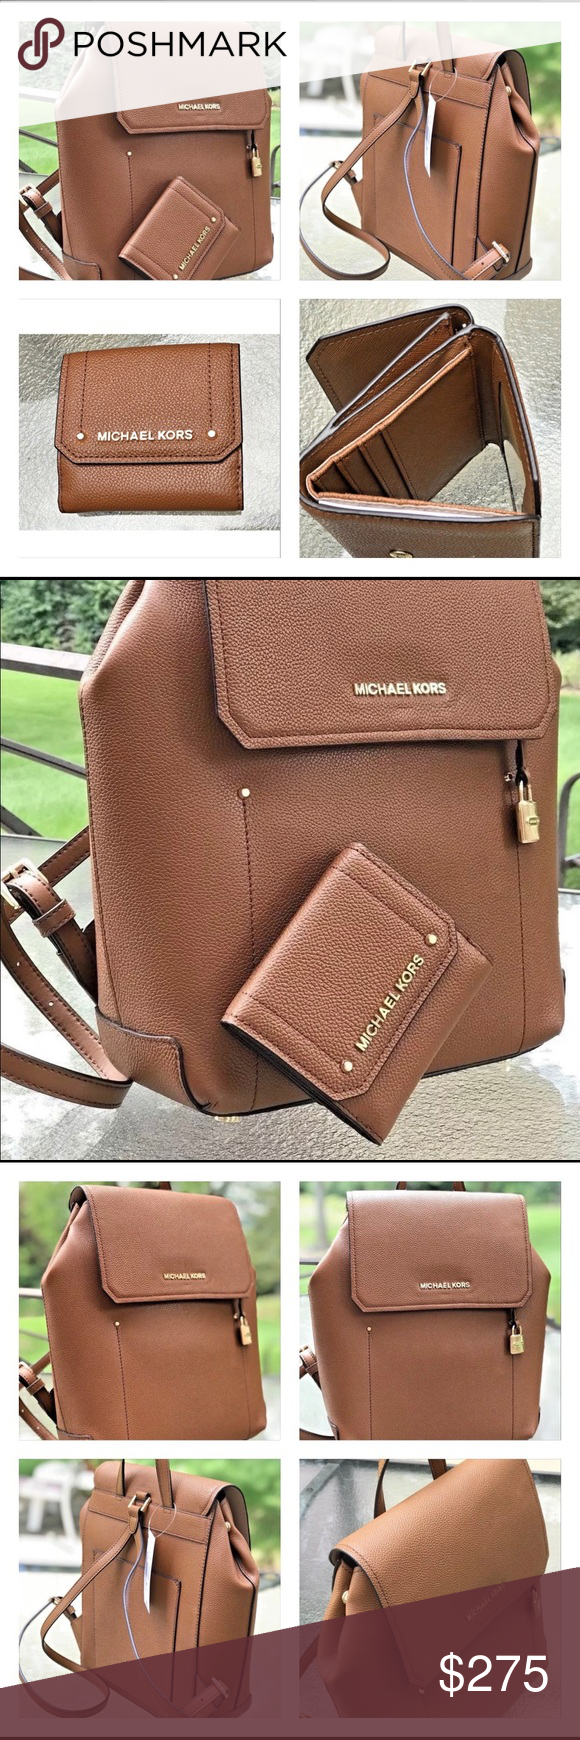 ff55a405d3bc Michael Kors Hayes backpack and small wallet set MICHAEL KORS Hayes Medium Backpack  Leather LUGGAGE +Matching LUGGAGE Leather Wallet BRAND NEW WITH TAG!